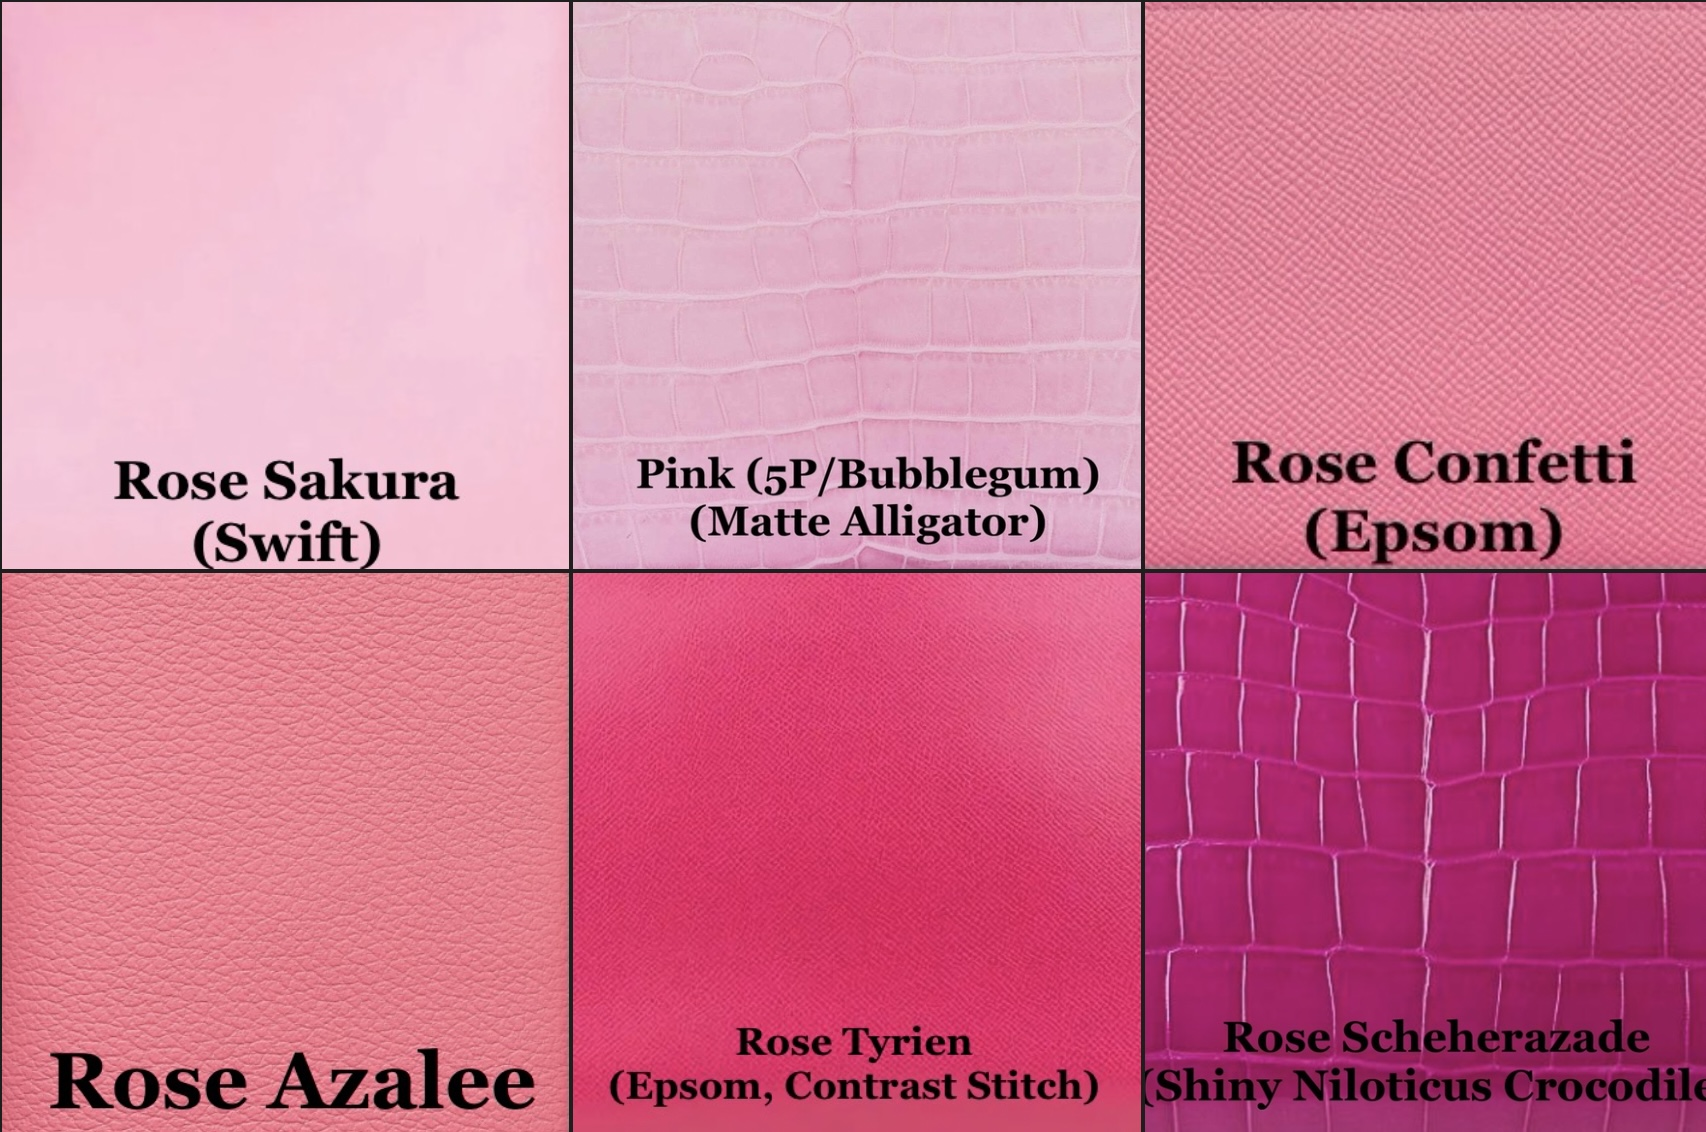 Some of the many popular shades of pink. Photo courtesy of @The_Notorious_Pink